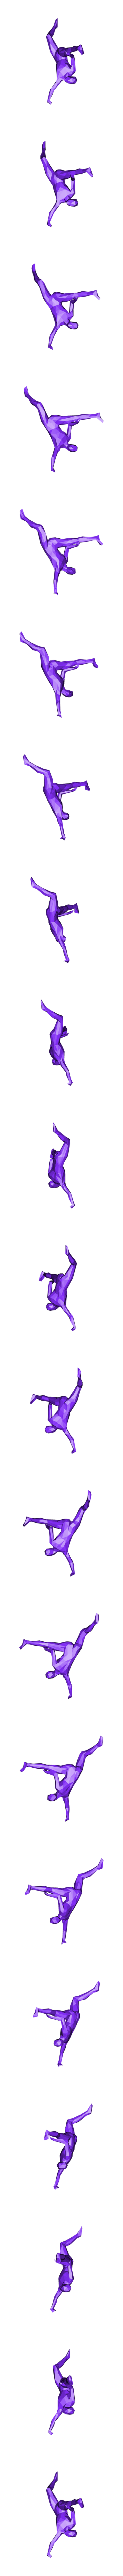 Au_batido_512.stl Download STL file Low Poly Capoeira Au batido • 3D printing design, LowPoly512